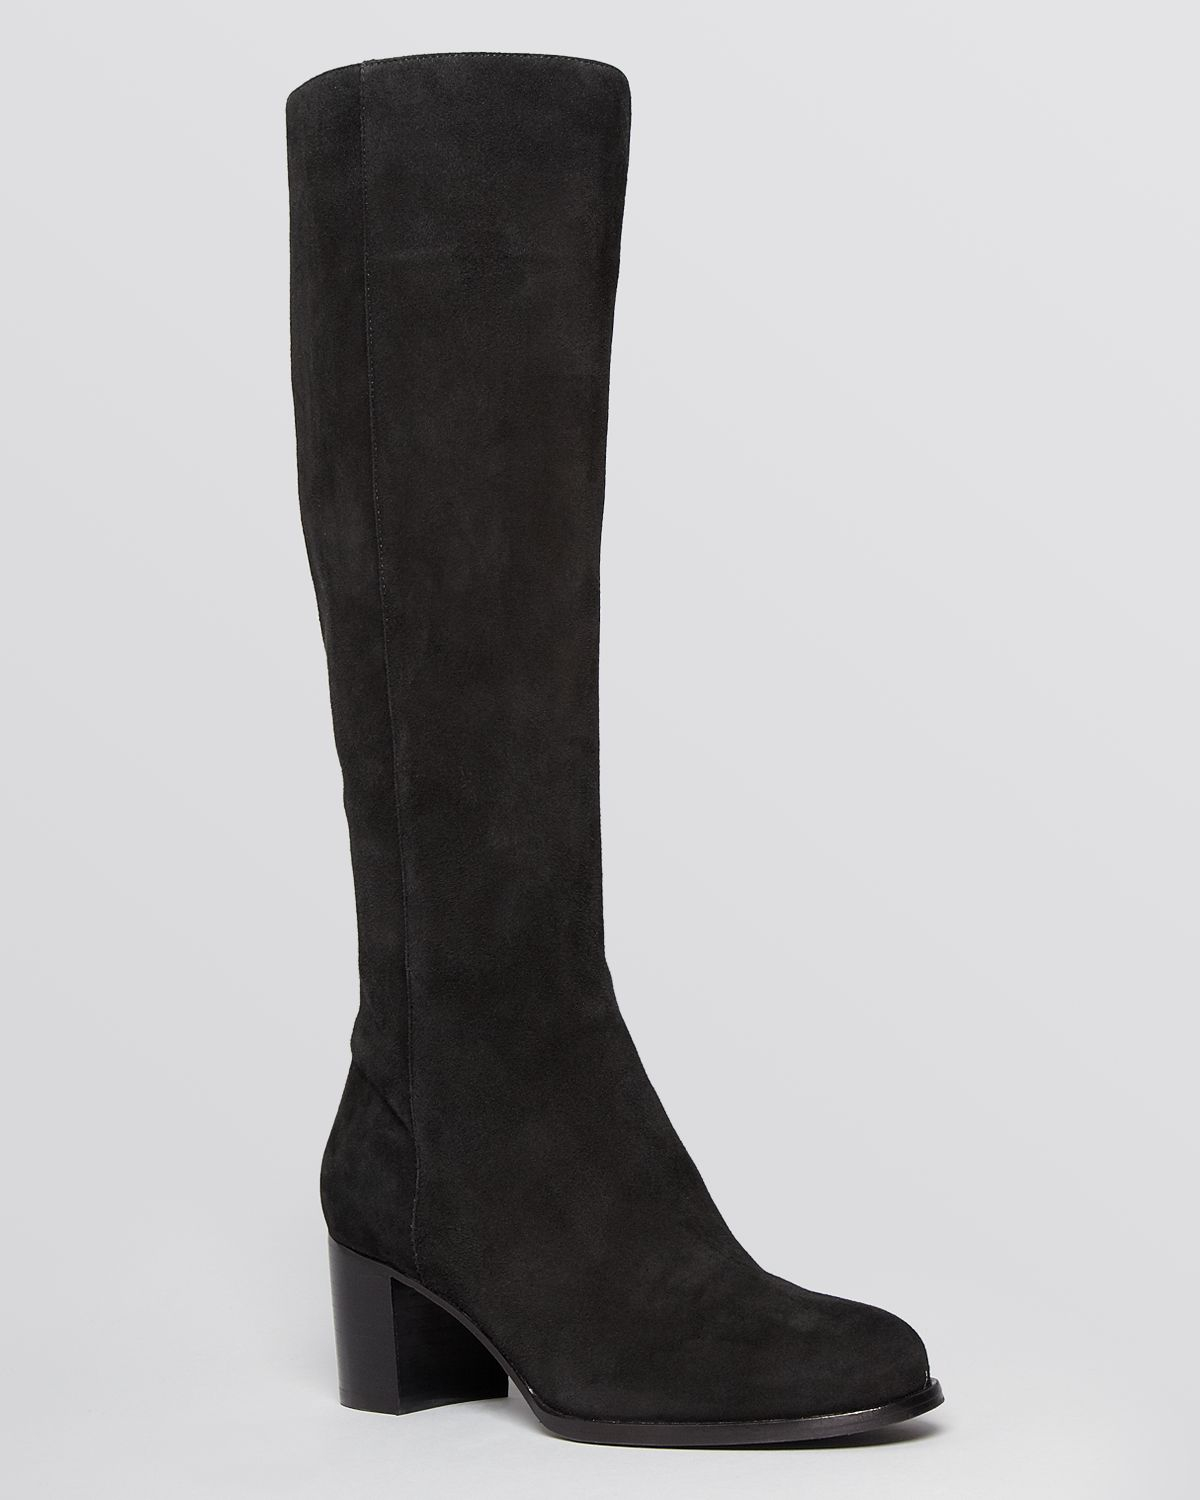 via spiga boots keshi suede in black lyst